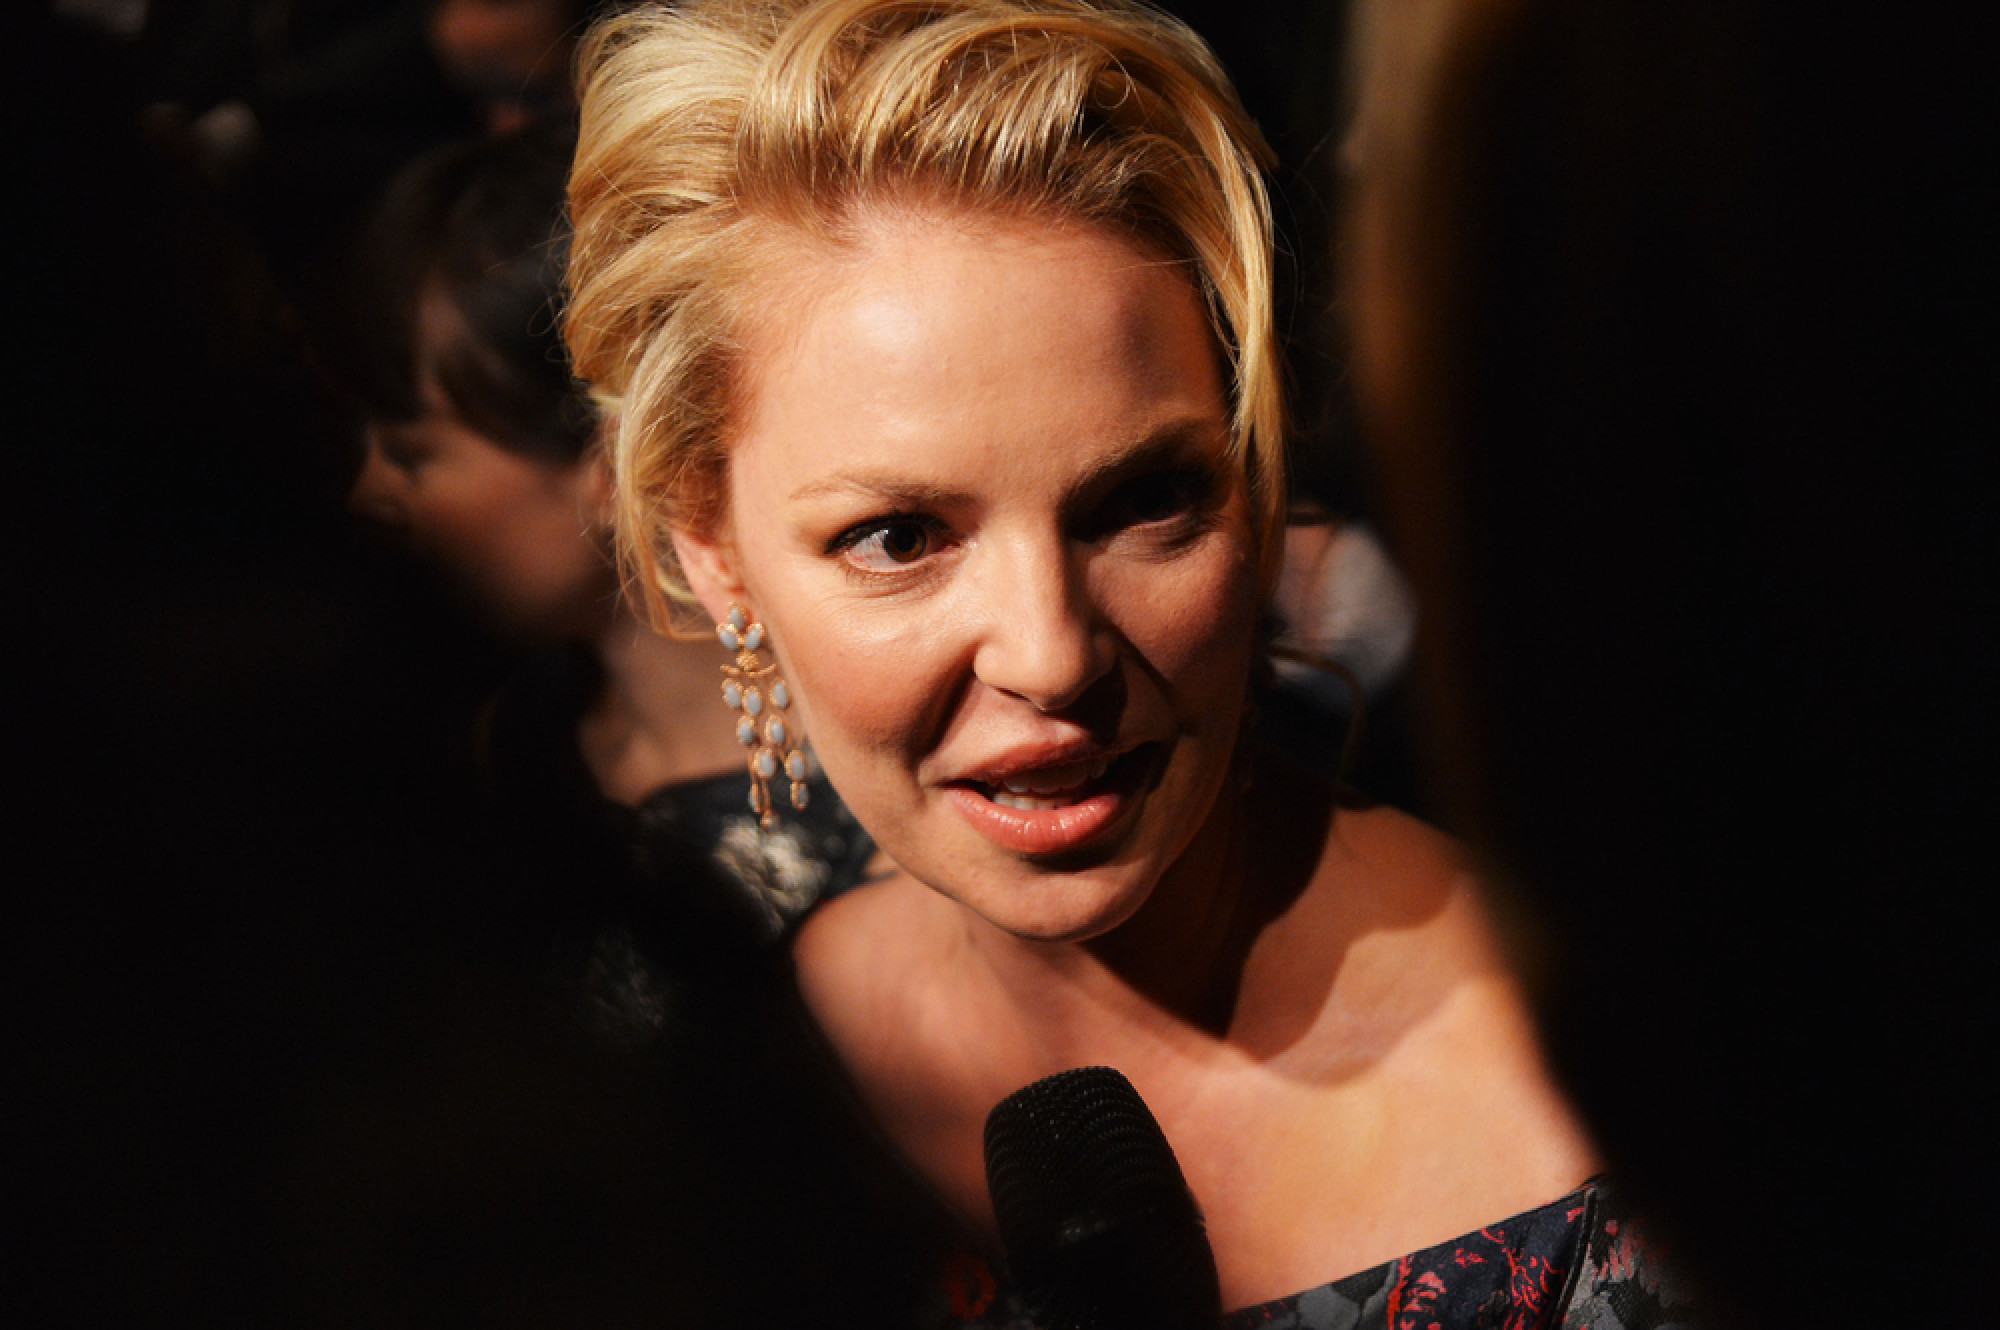 10 celebrities rumored to be difficult to work with huffpost - Katherine heigl diva ...